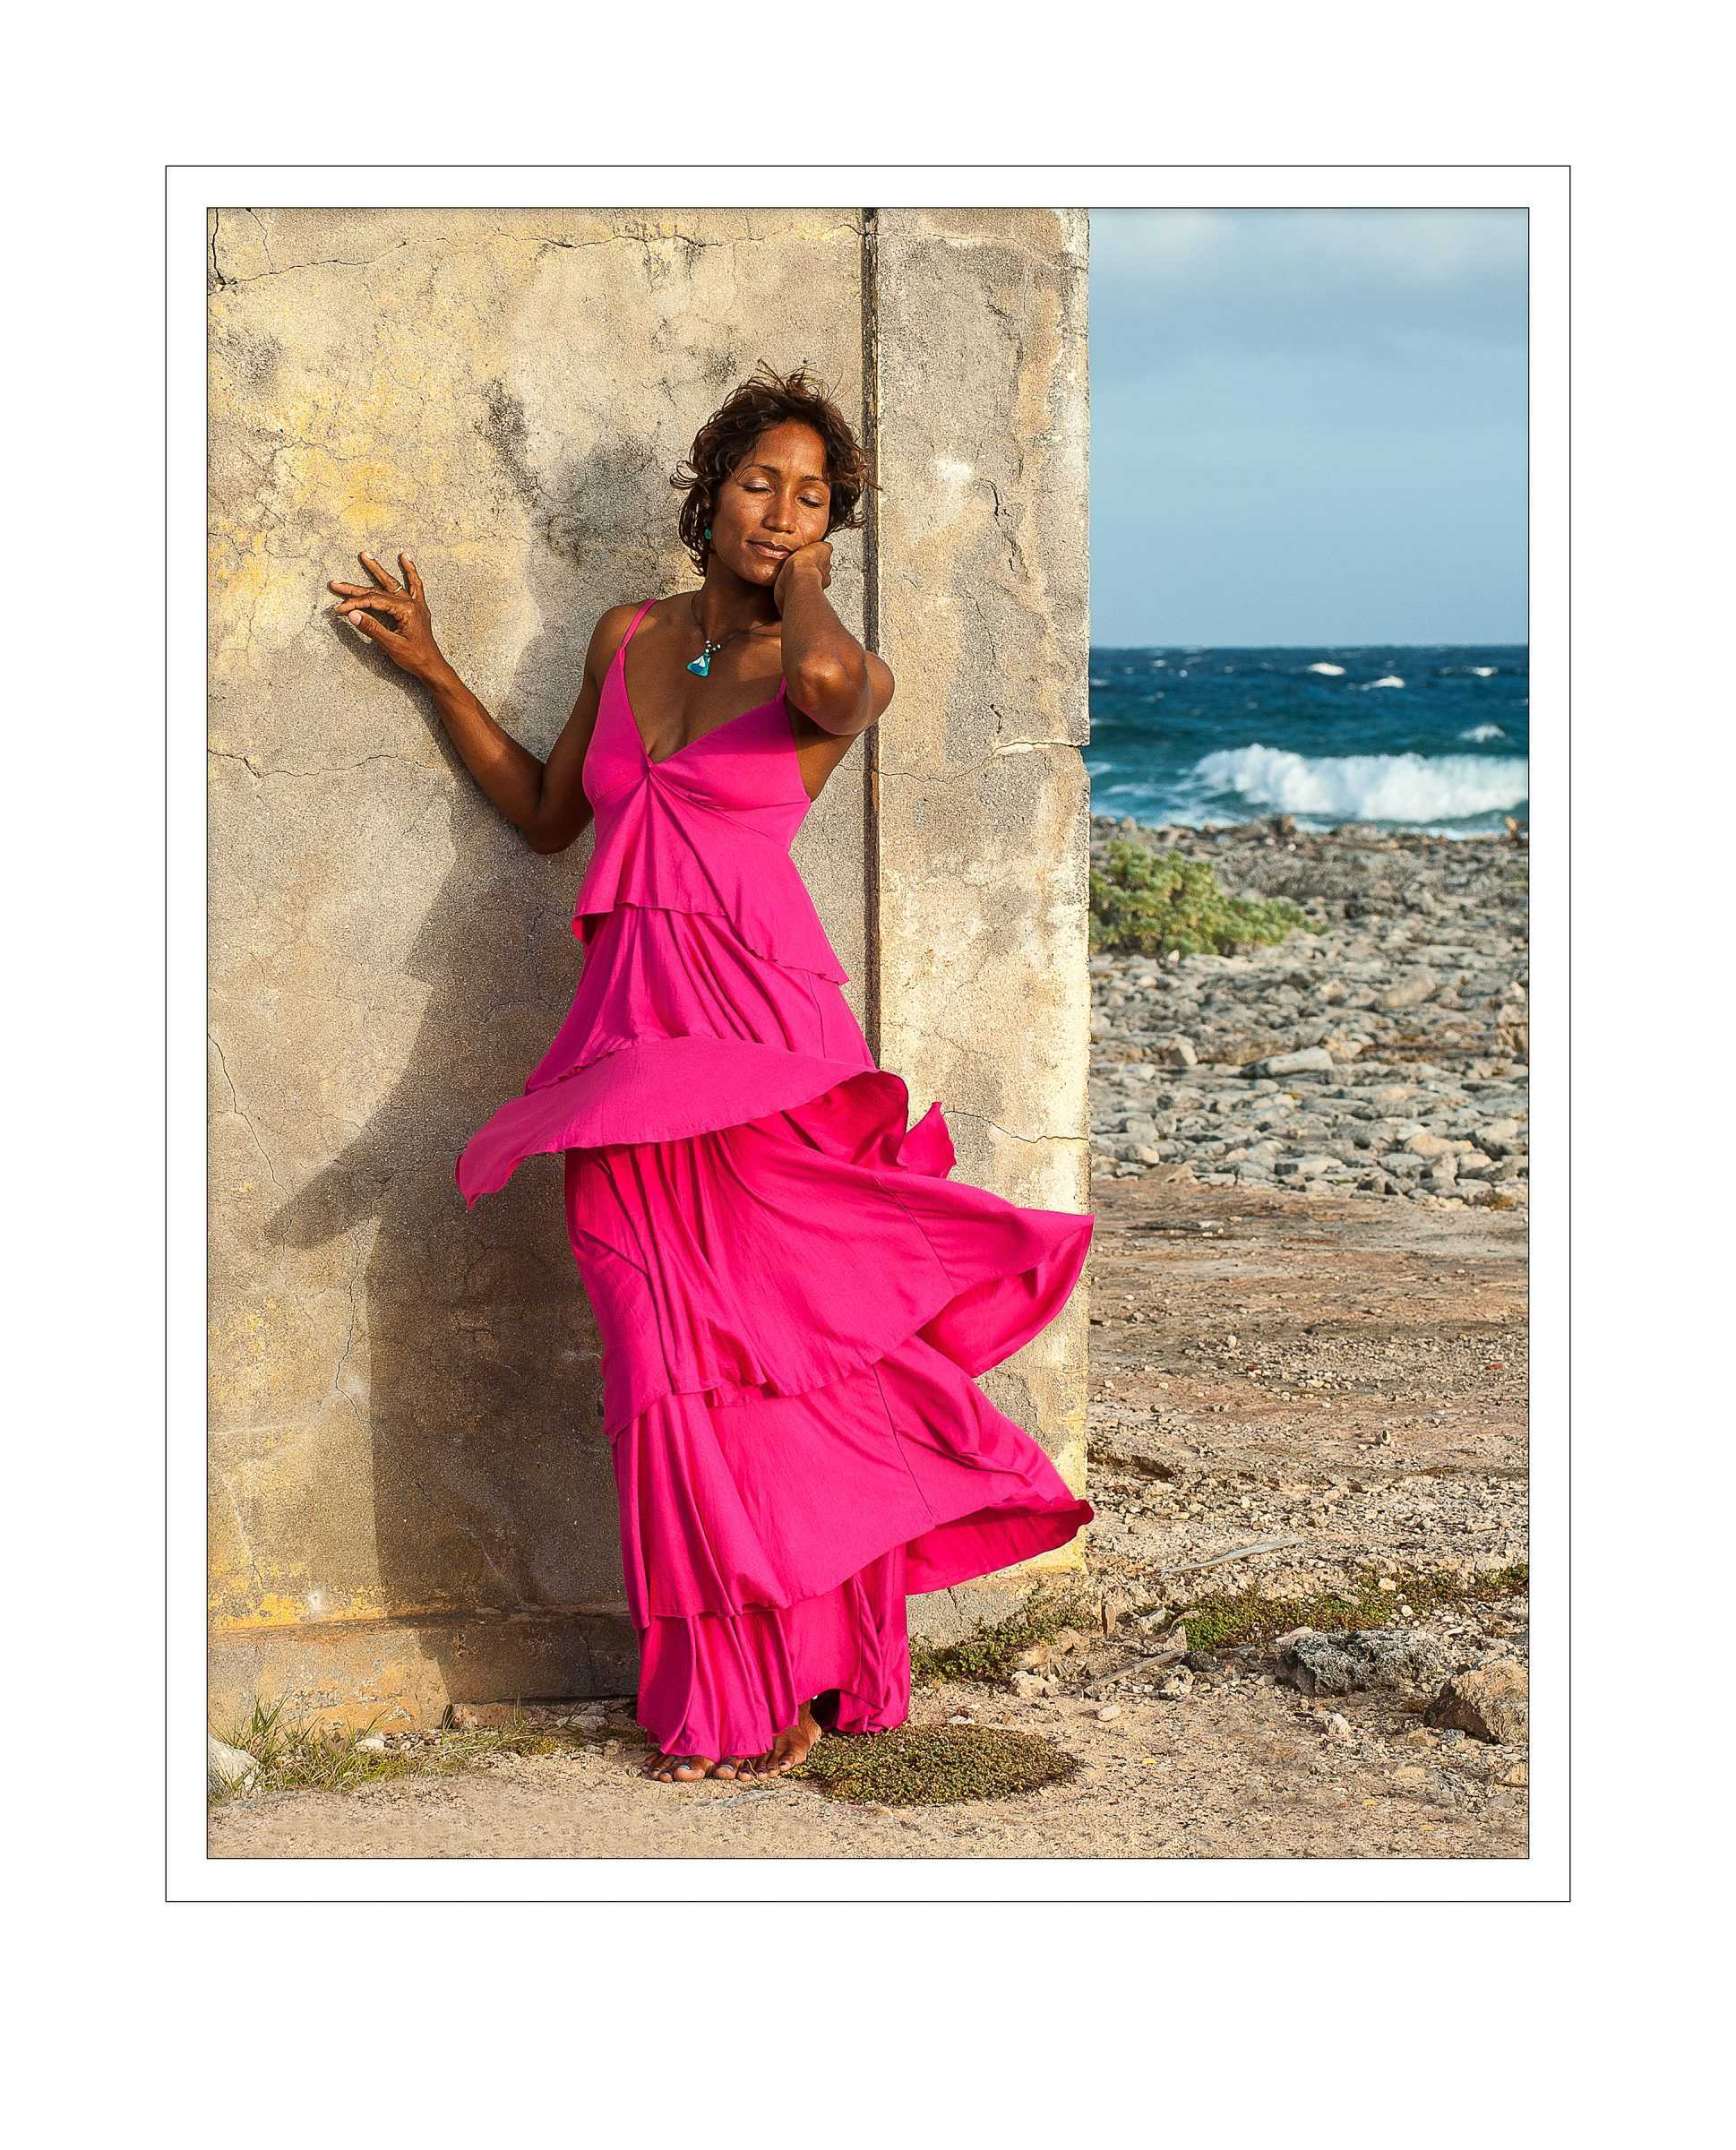 Photograph of a woman on the beach with pick dress